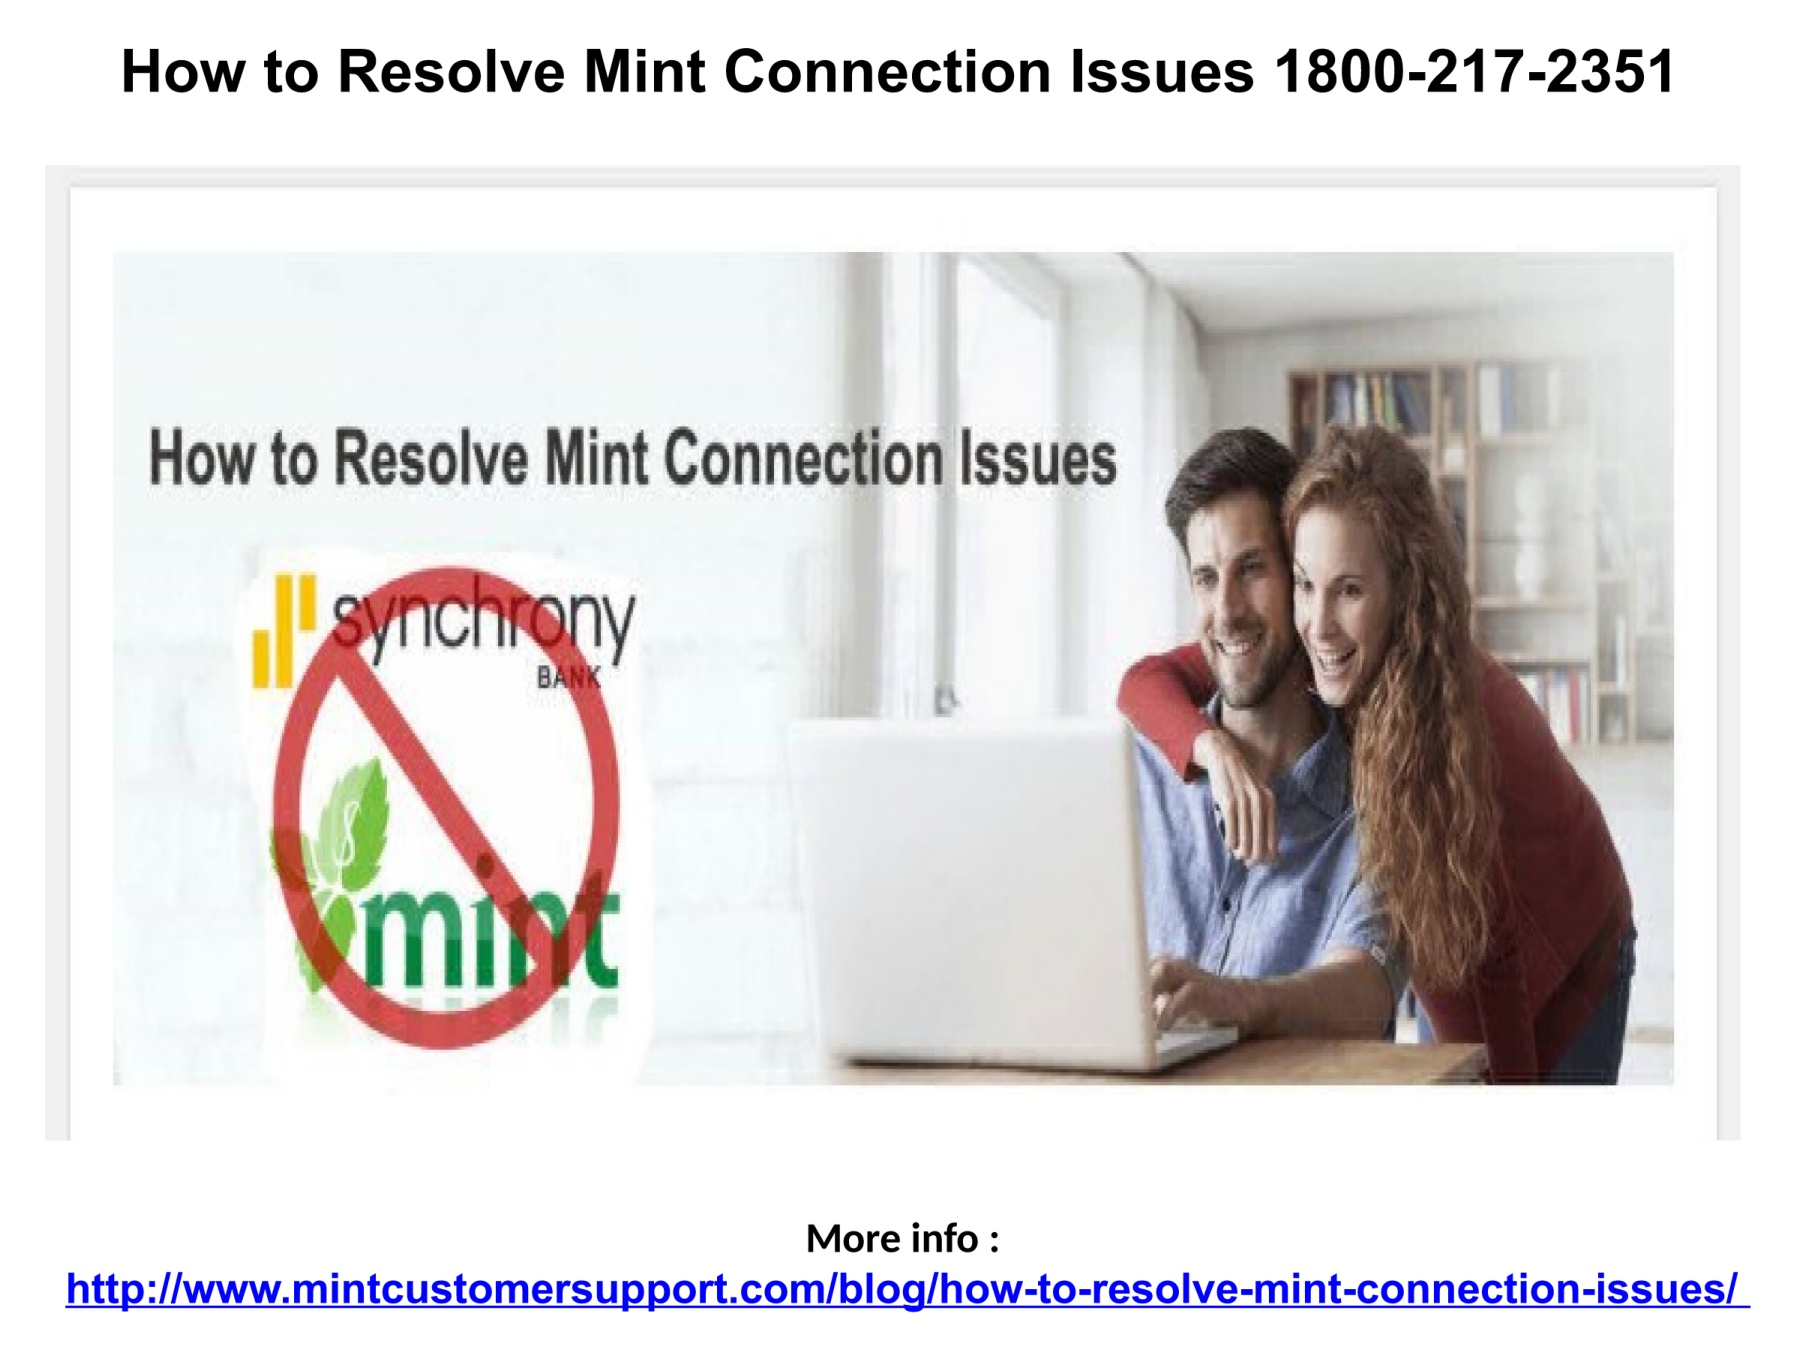 Mint Sync Issues Number 1800-217-2351